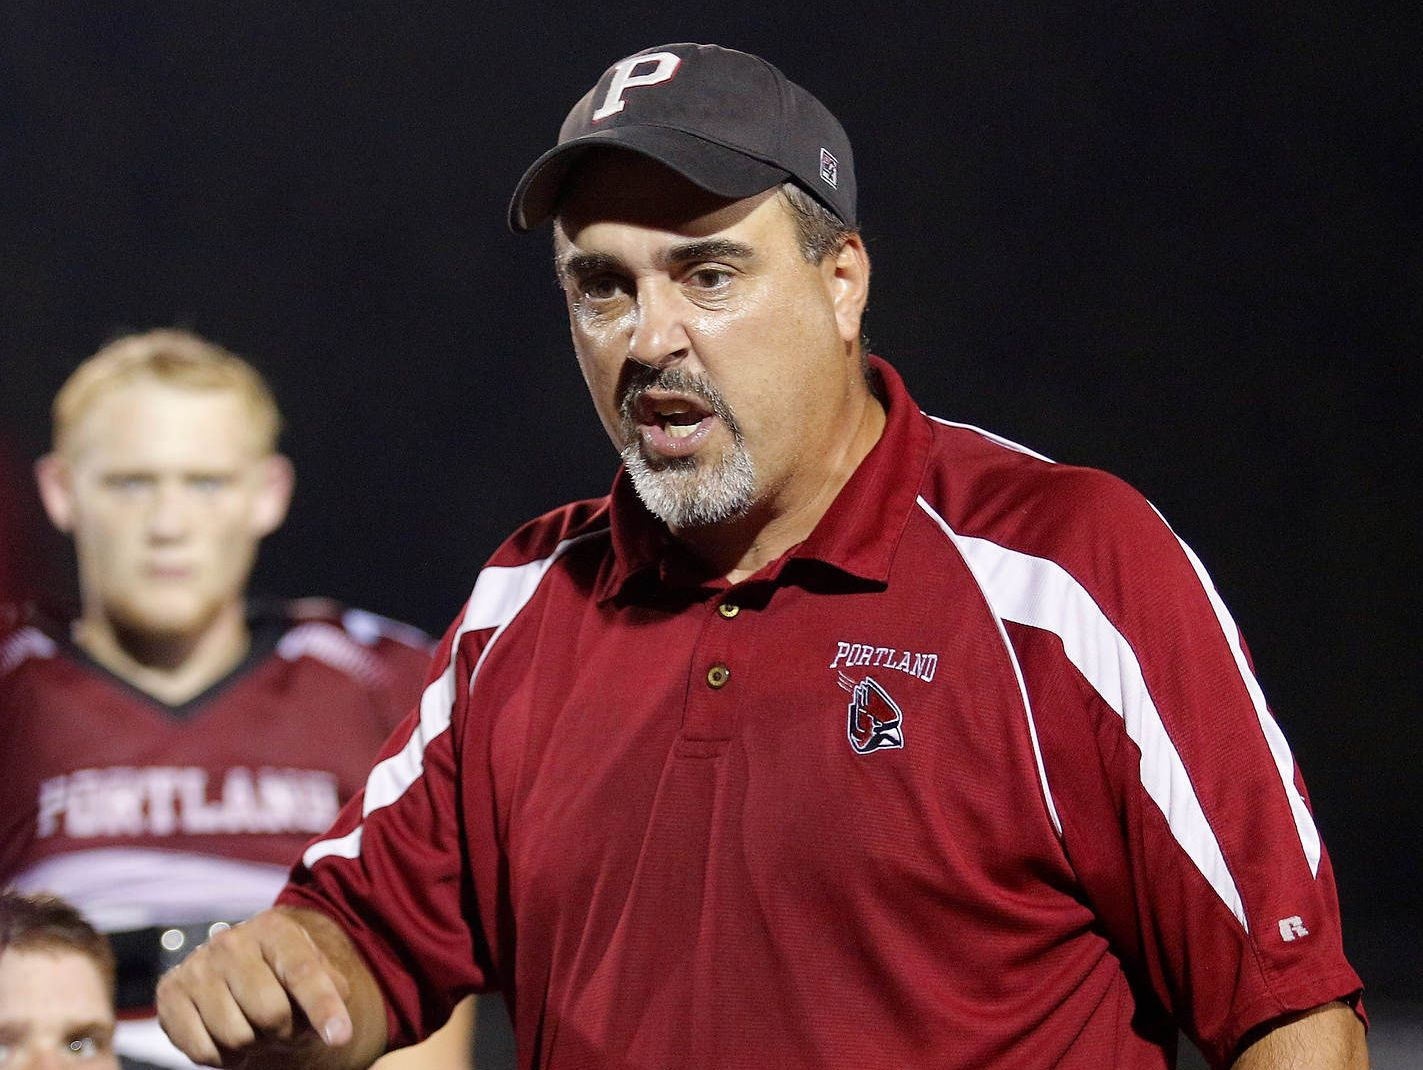 Portland coach John Novara has guided the Raiders to two consecutive CAAC White titles.